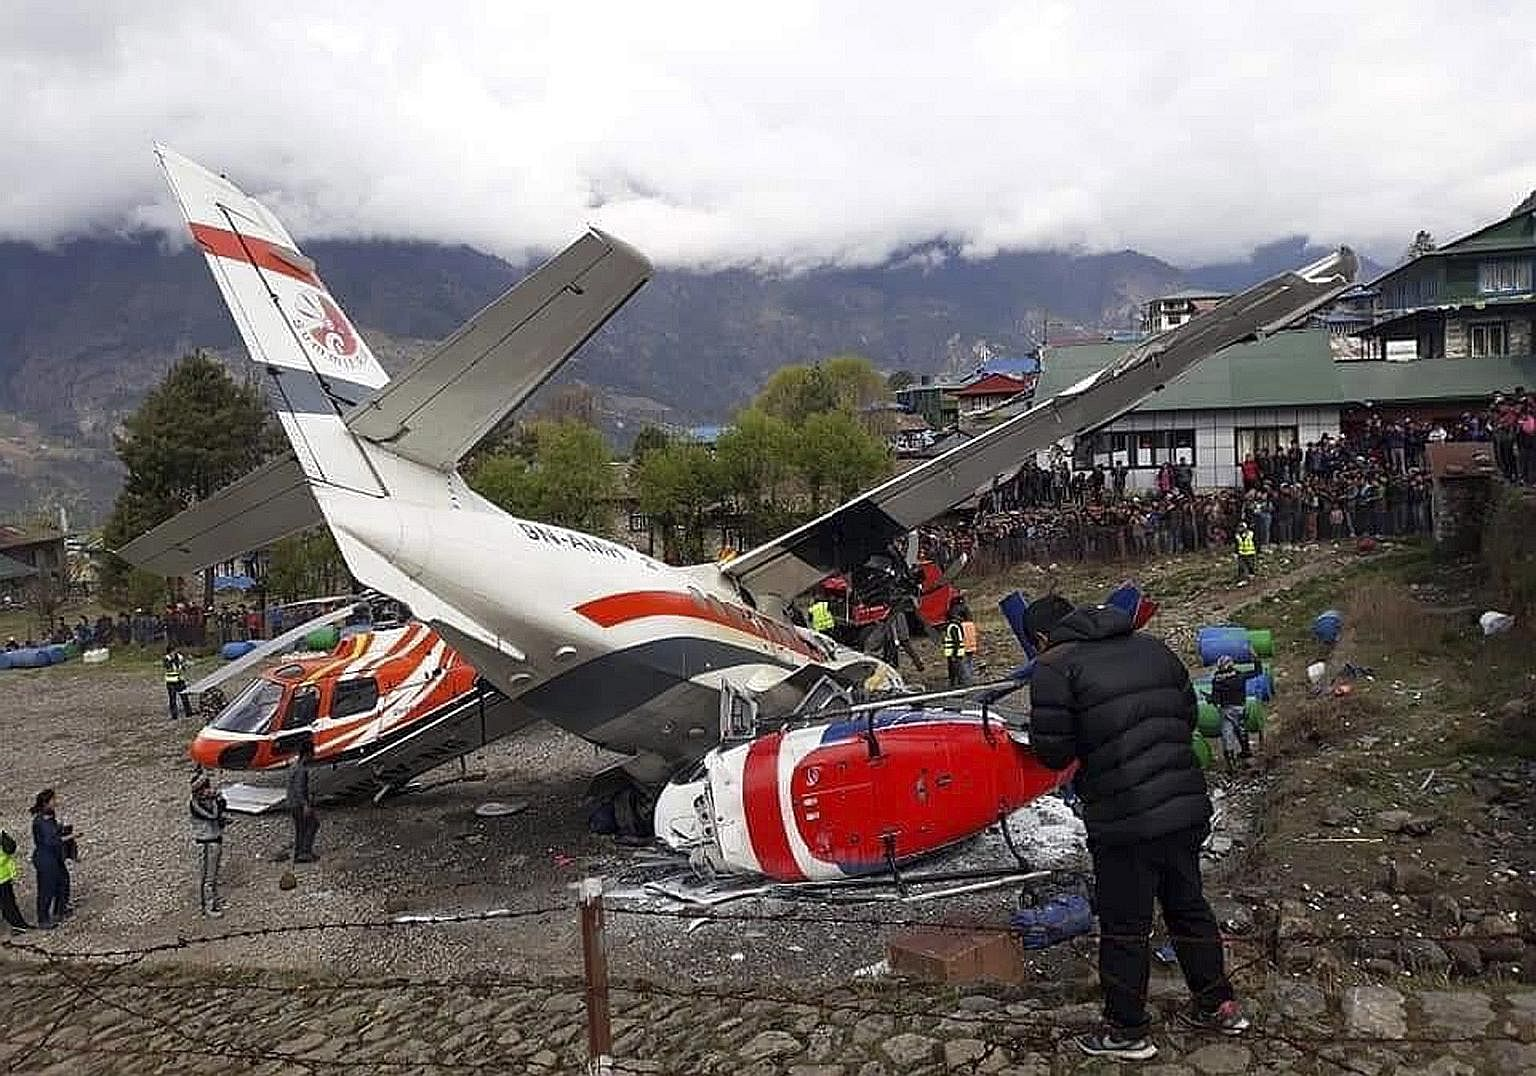 The wreckage of a Summit Air turbo-prop plane lying in between two helicopters on an airstrip at Nepal's Lukla Airport after the plane hit them during take-off yesterday. Three people - the plane's co-pilot and two police officers - were killed in th